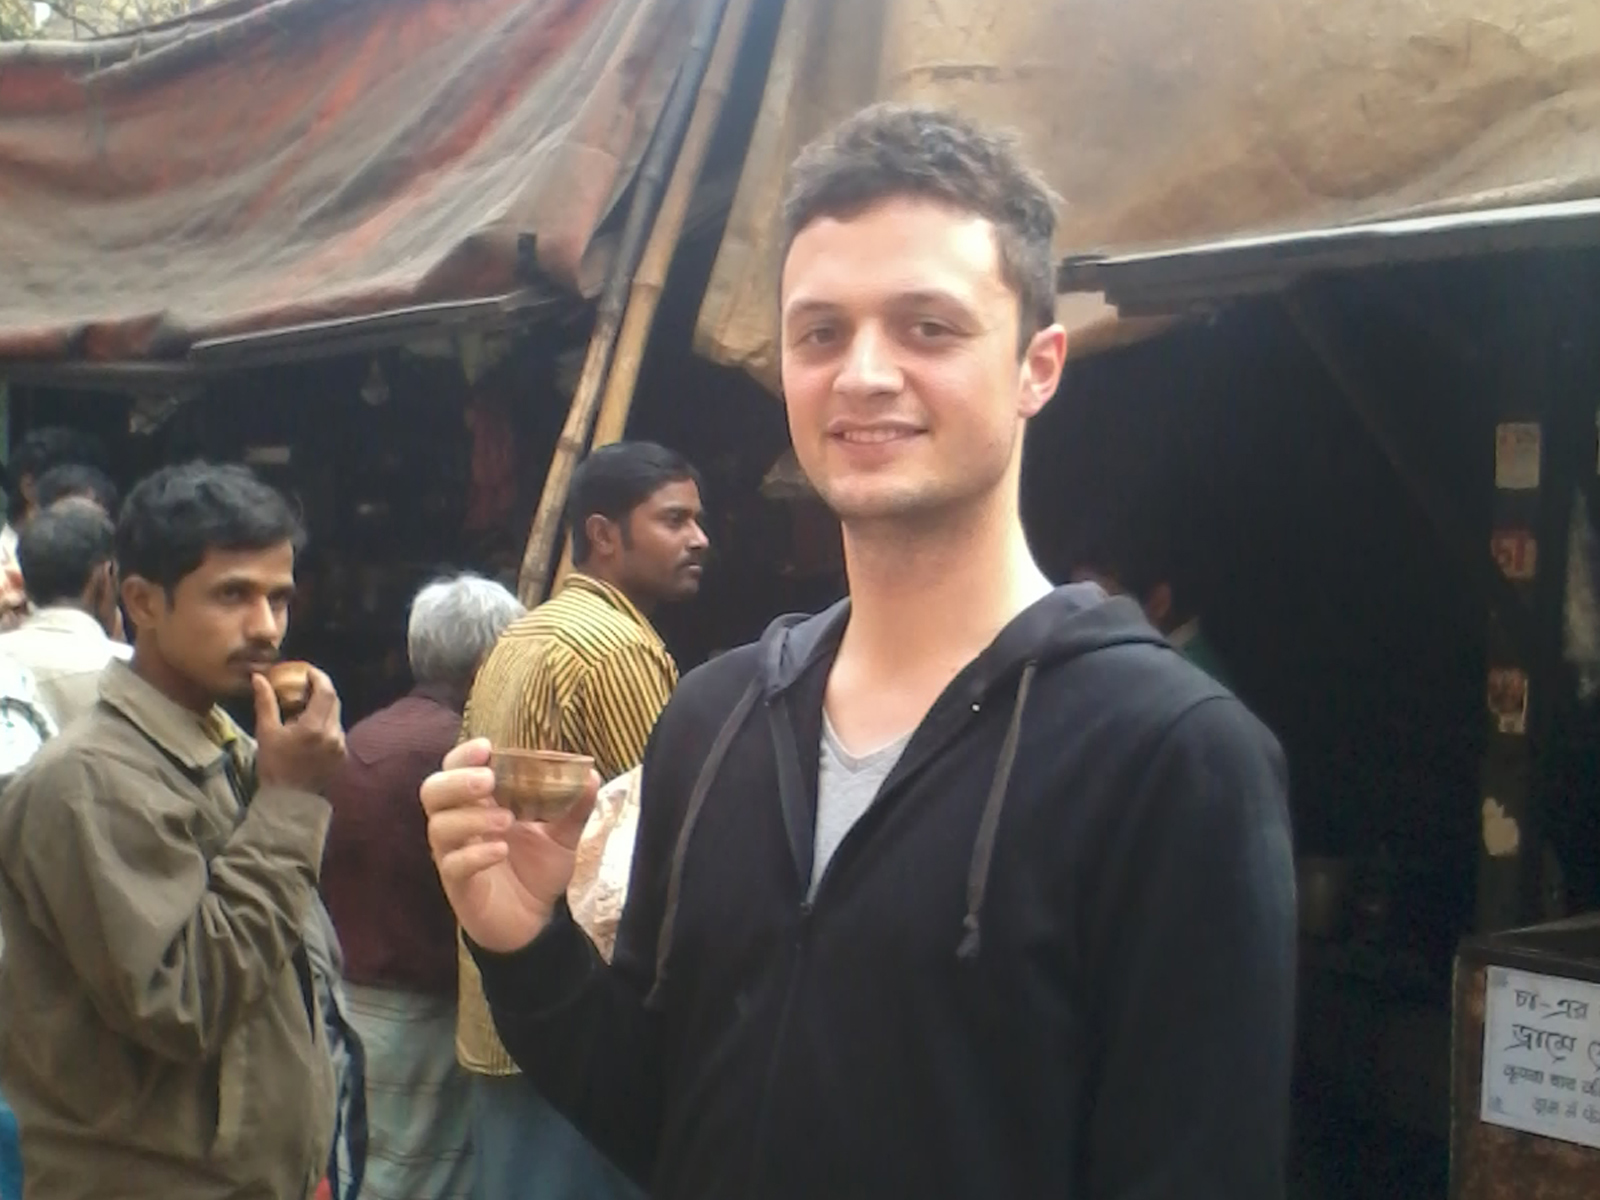 Prof Ehrlich in Kolkata, India, in 2013, holding Chai, a local tea made from milk and spices, in a clay cup.